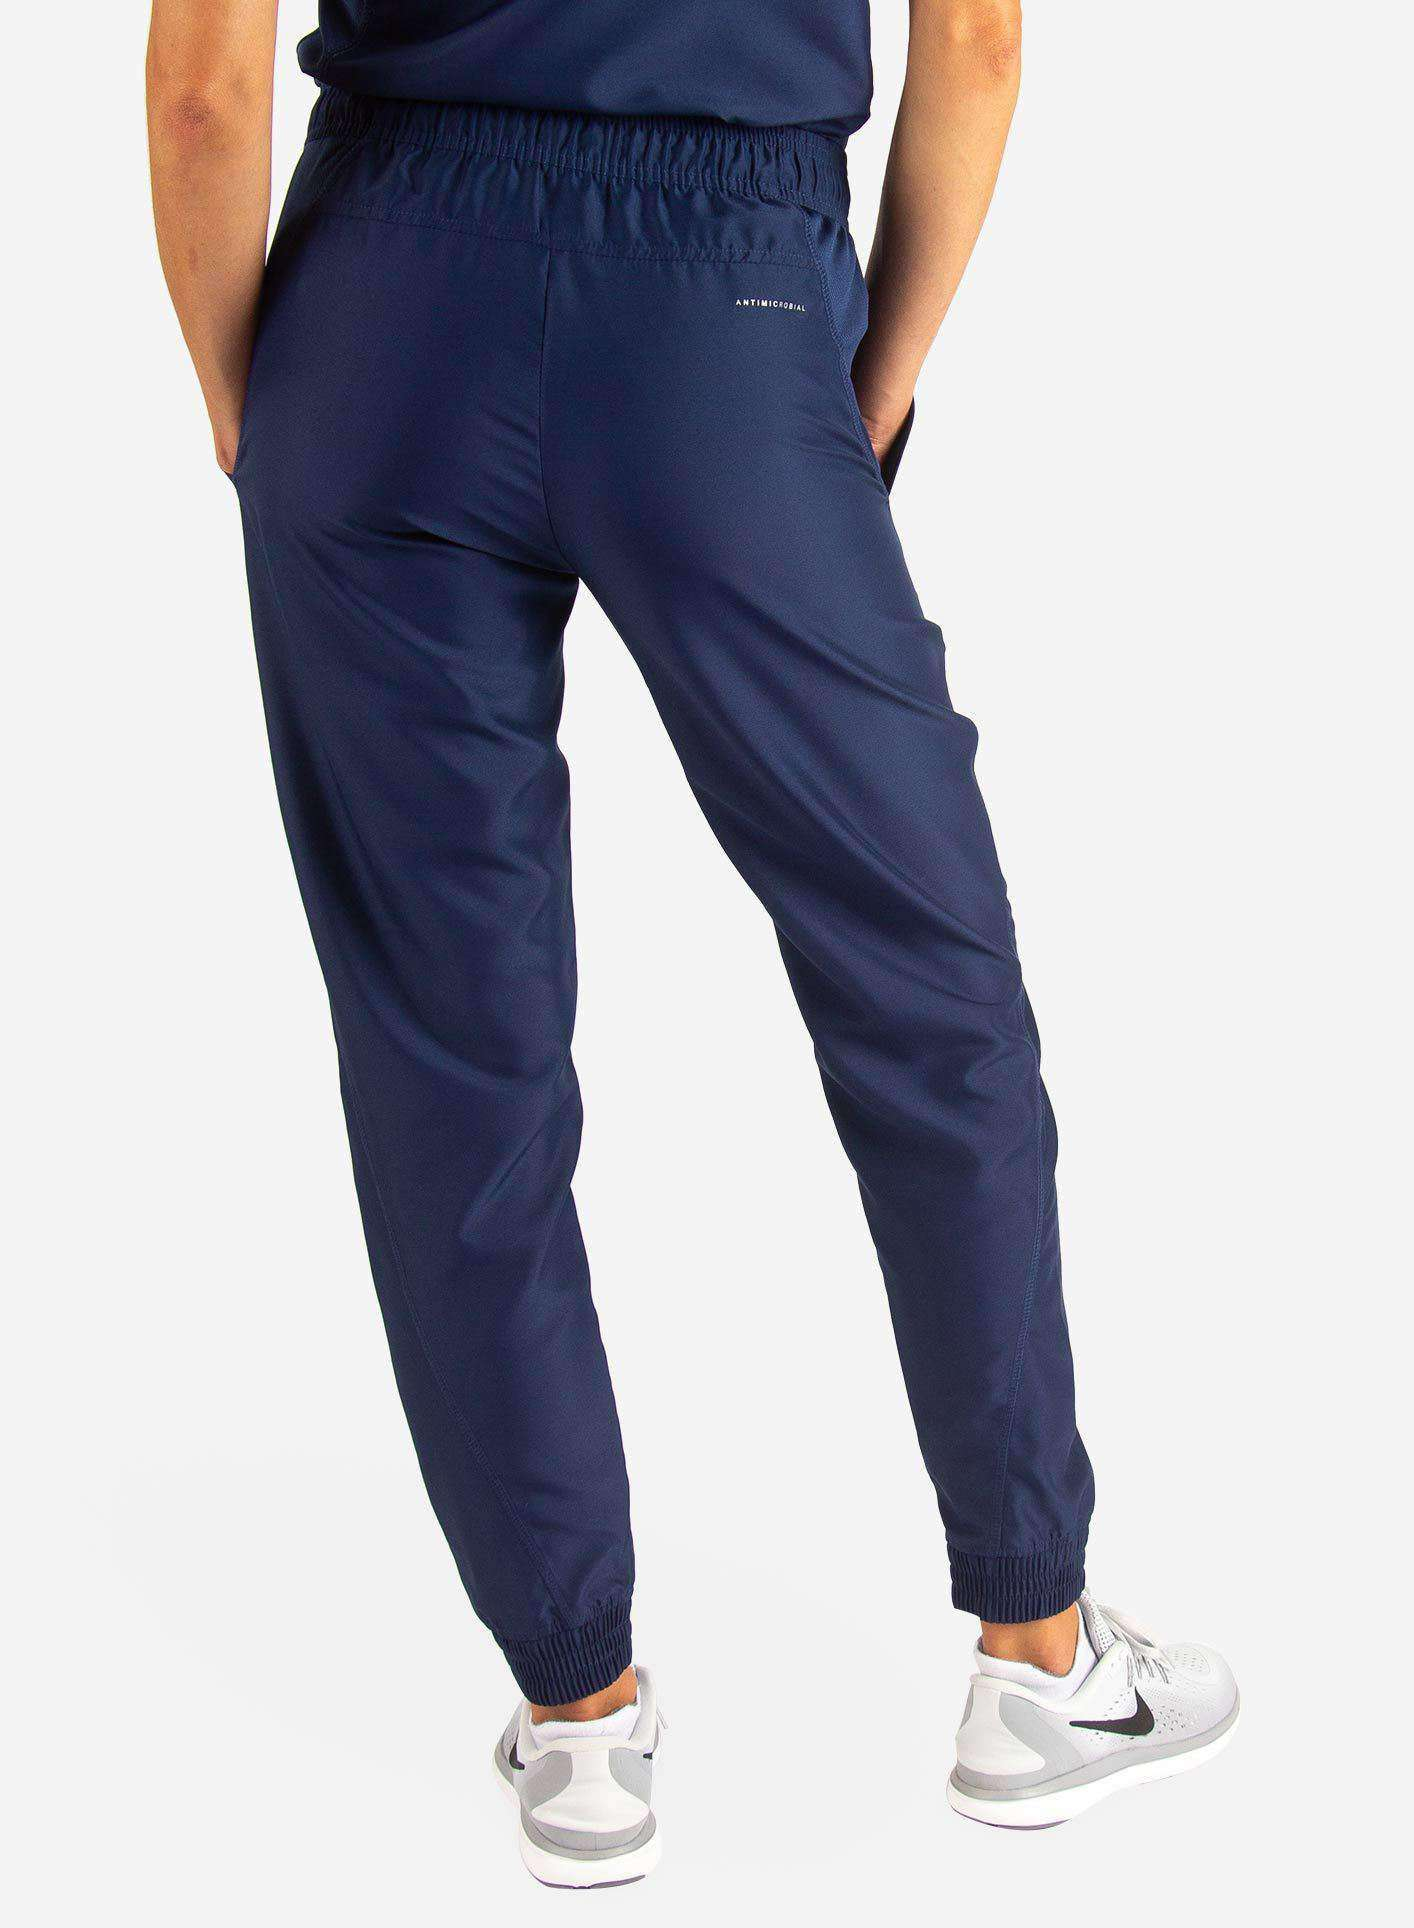 Women's Jogger Scrub Pants in Navy Rear View